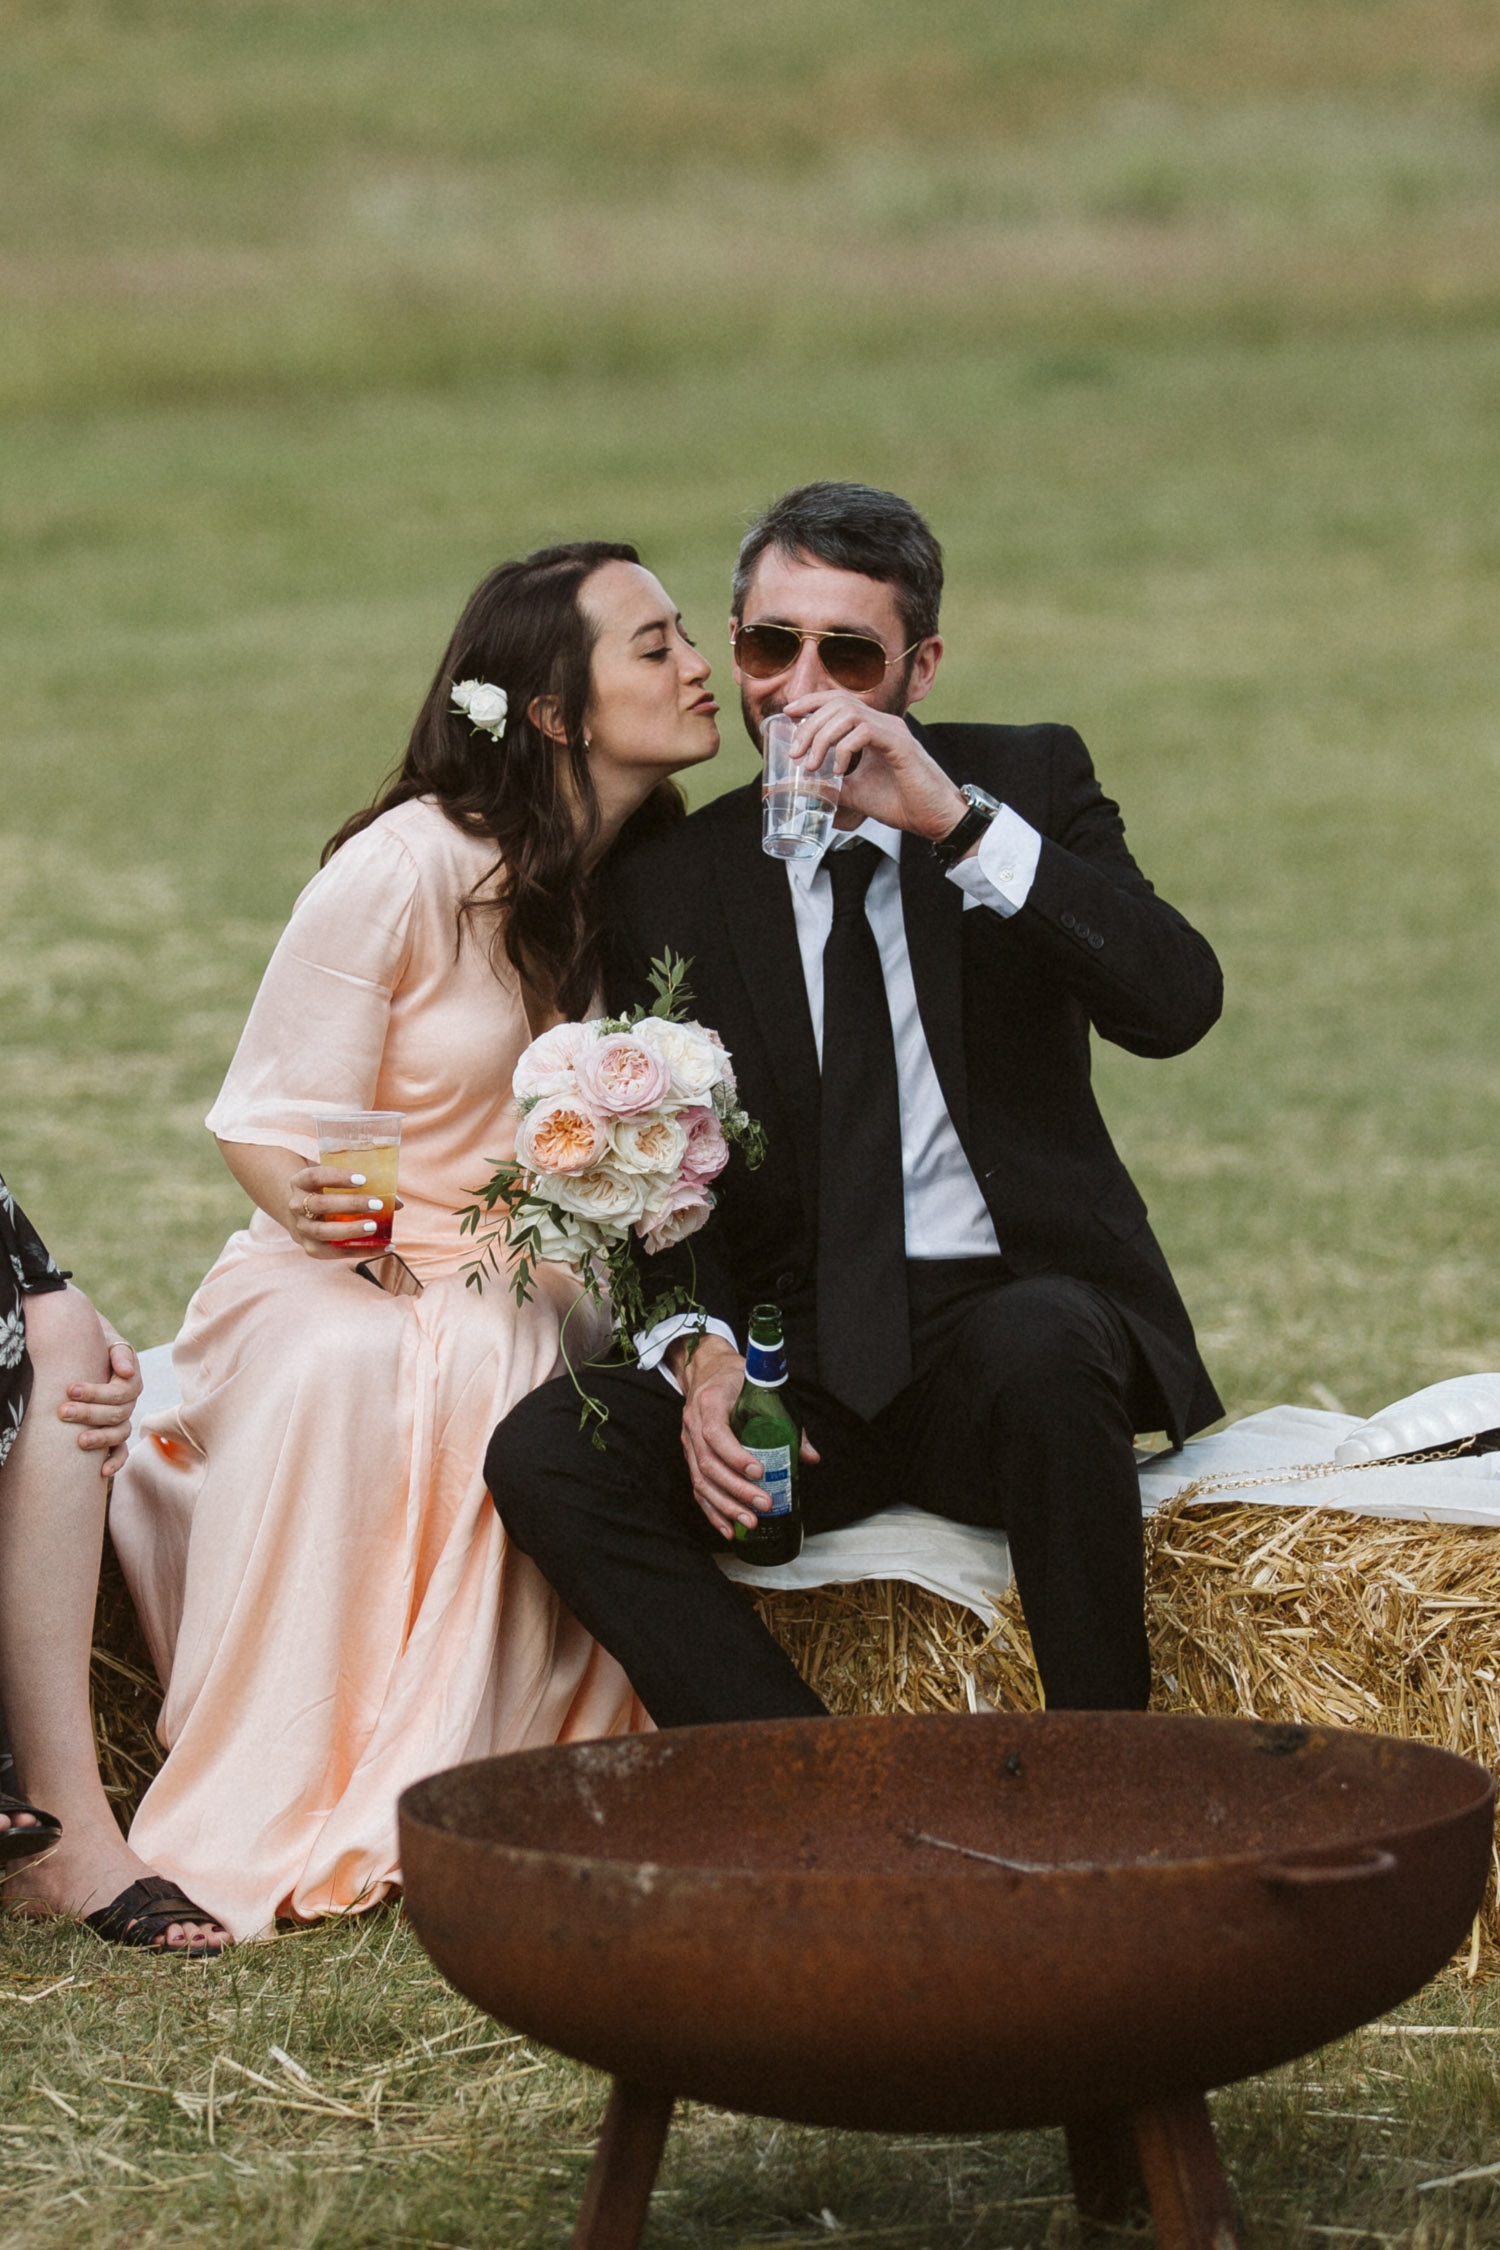 an intimate moment on hay bales with a bridesmaid and her partner